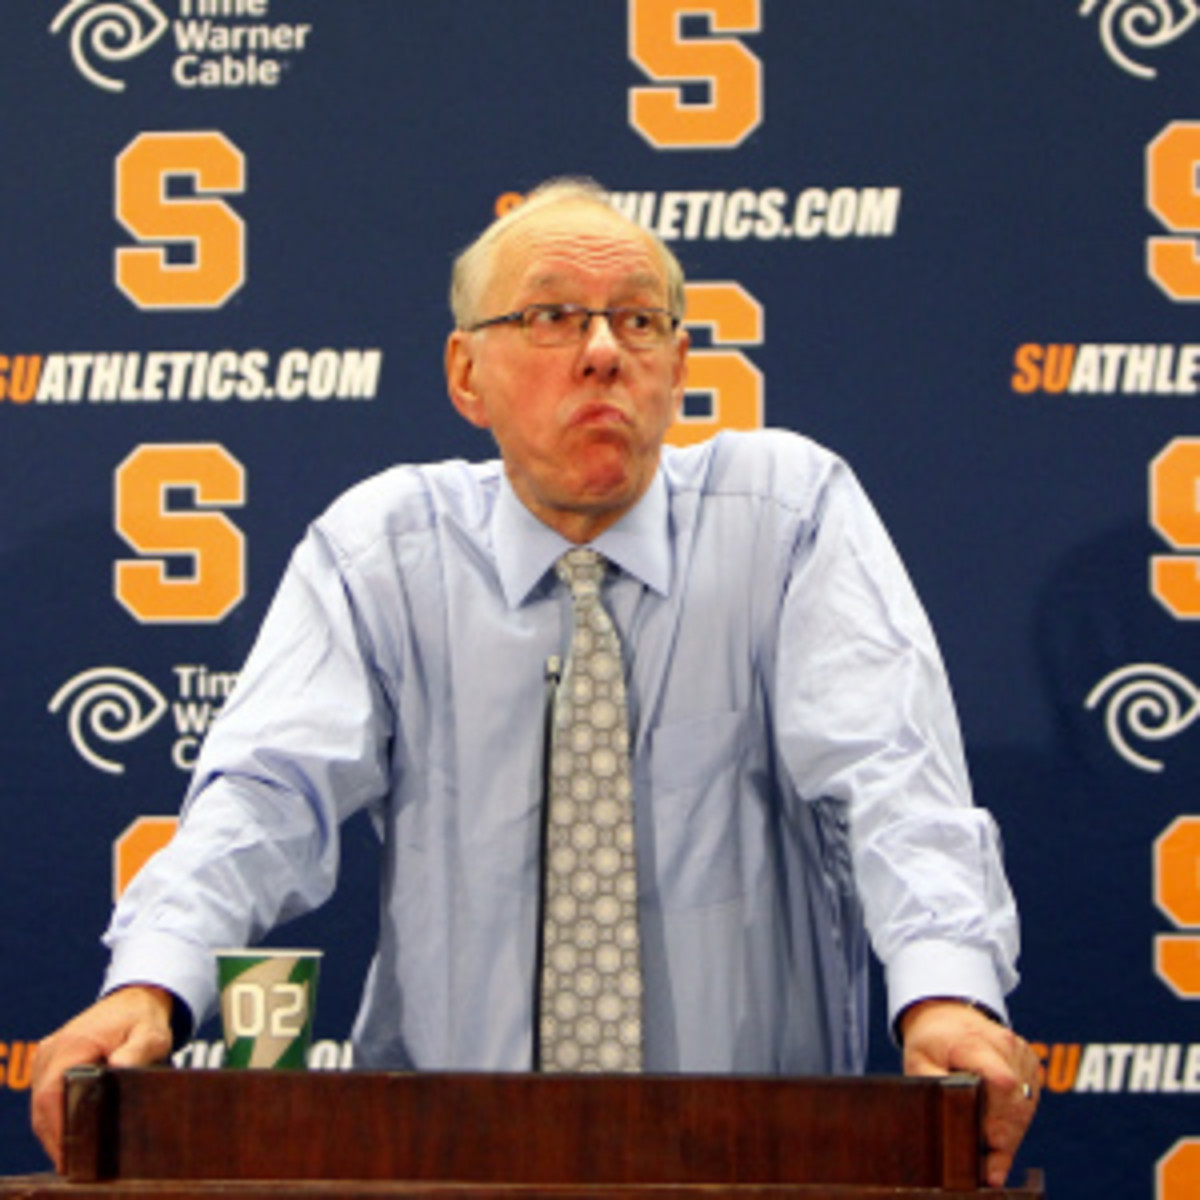 Jim Boeheim ripped into ESPN's Andy Katz following the Orange's loss to the Huskies. (Nate Shron/Getty Images)